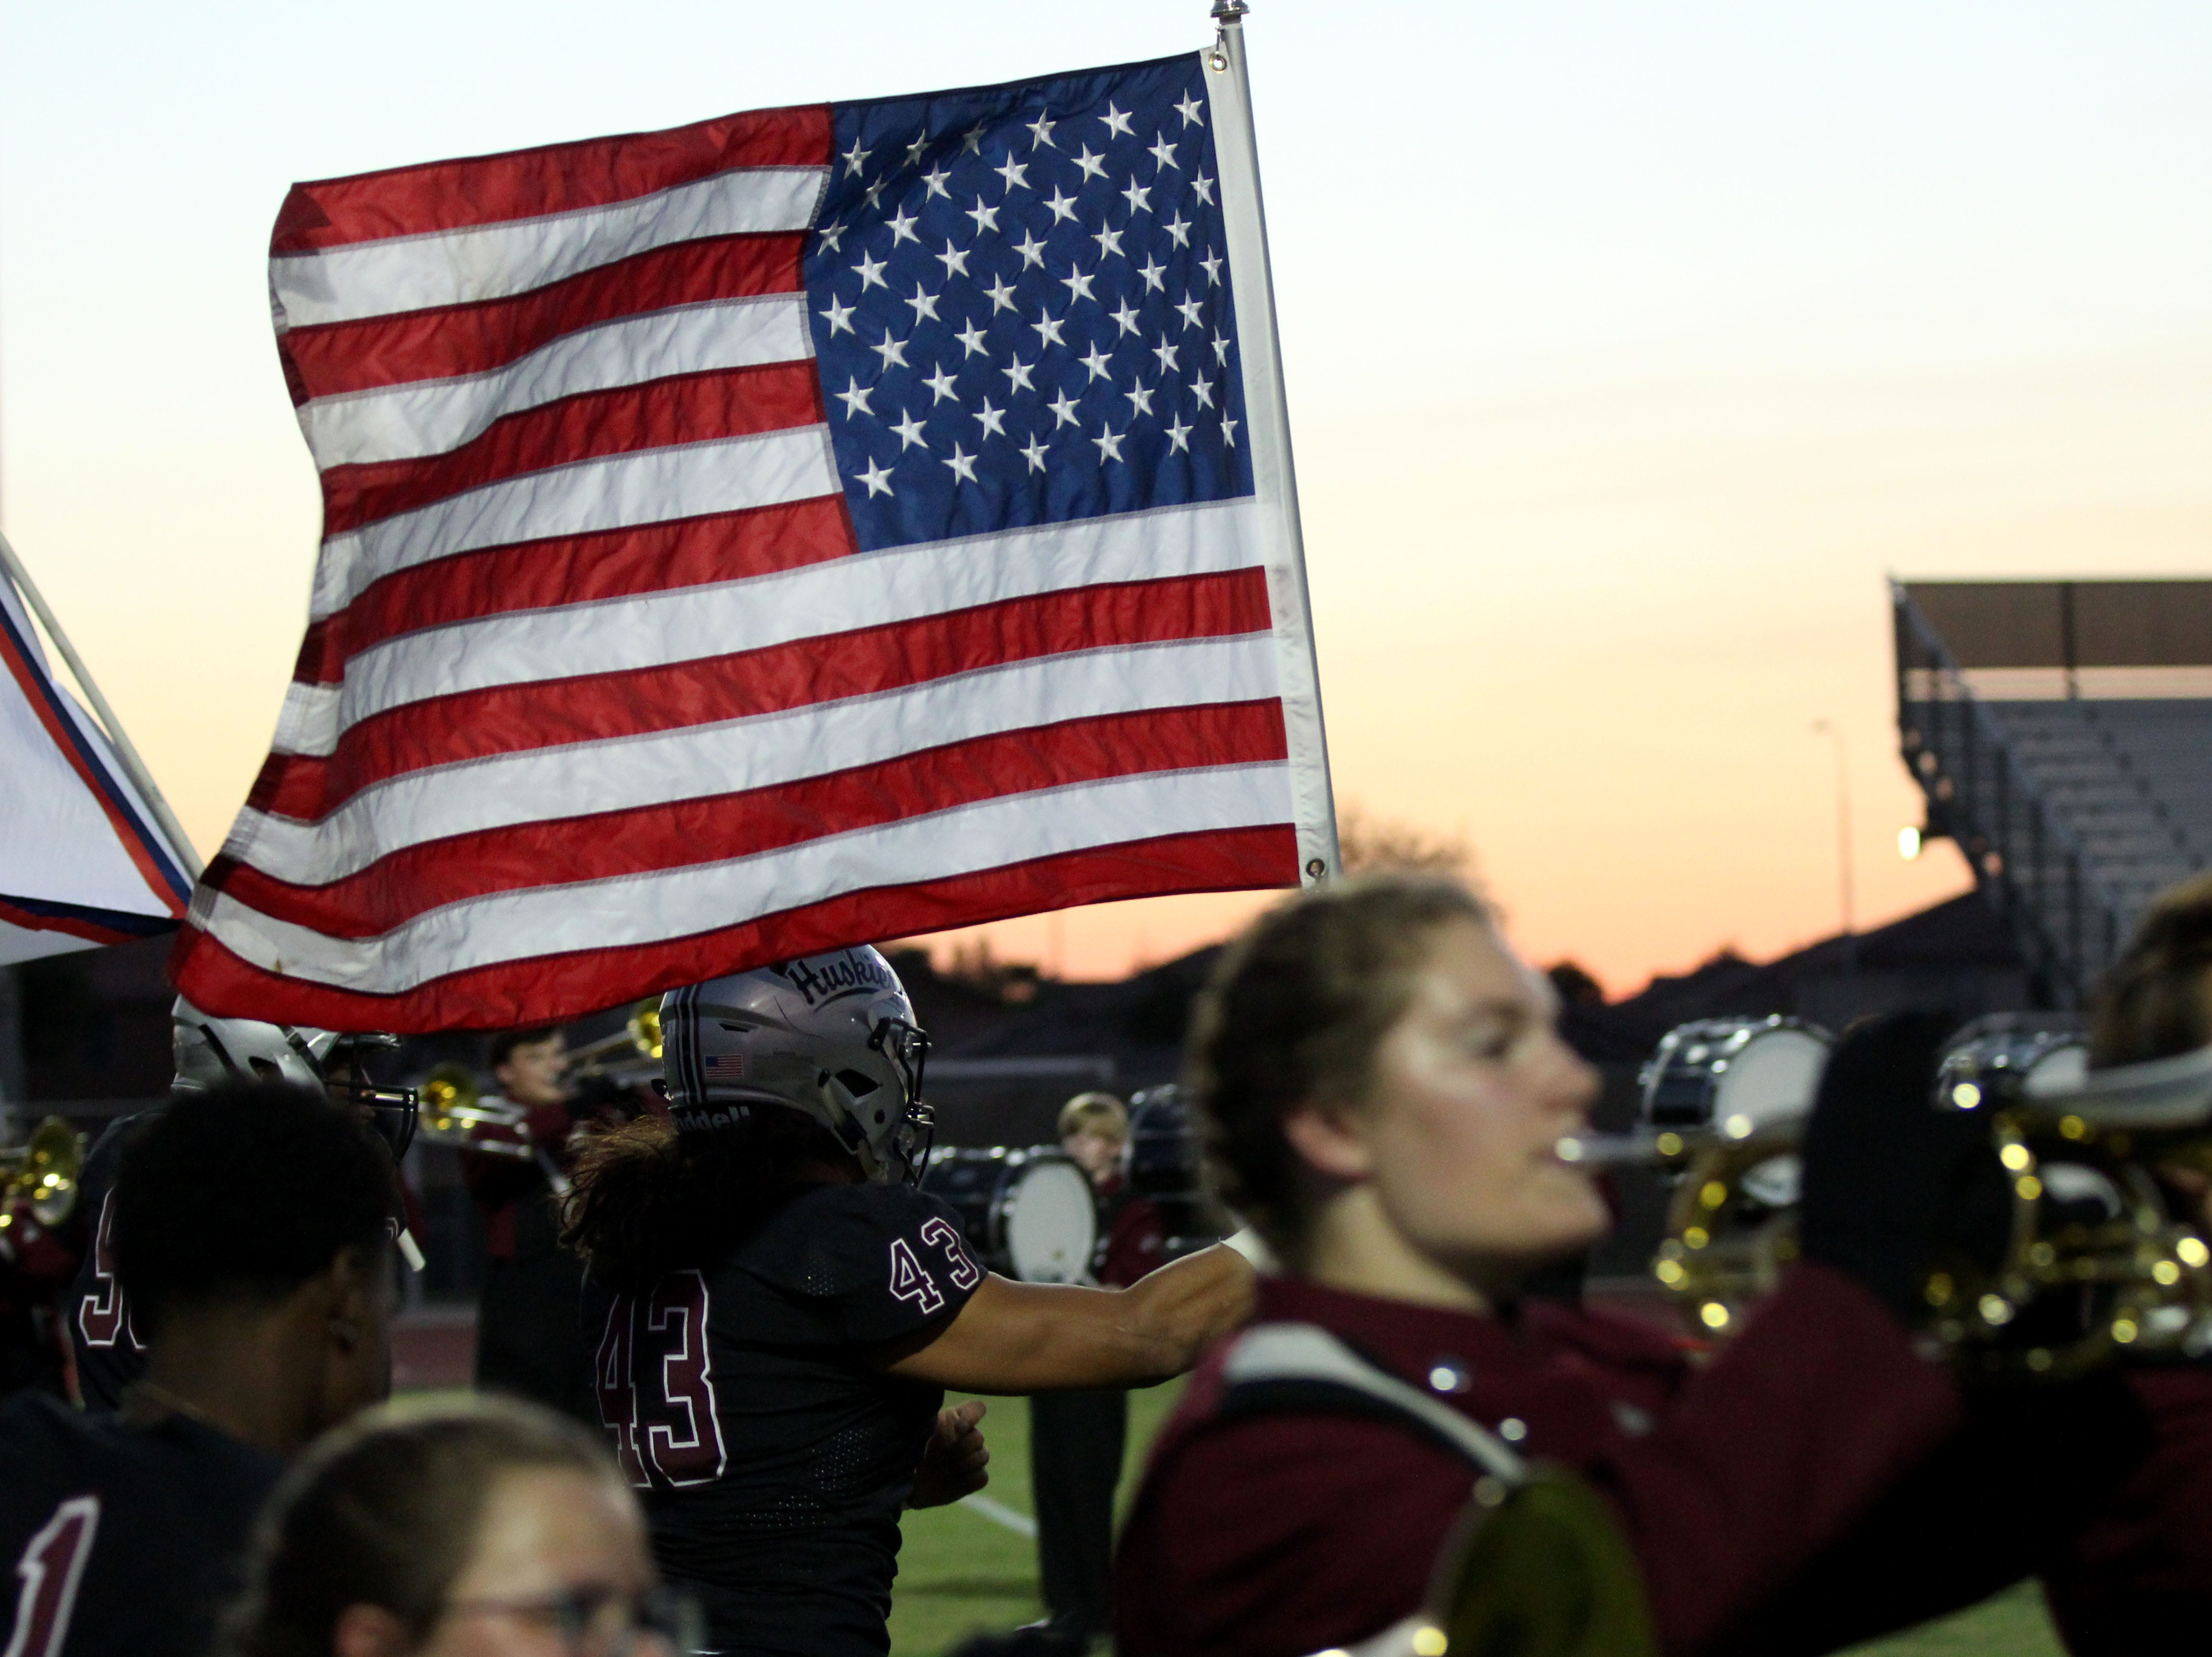 Hamilton takes the field with the United States flag before its game against Tolleson on Friday night in Chandler, Ariz. Sept. 7, 2018.